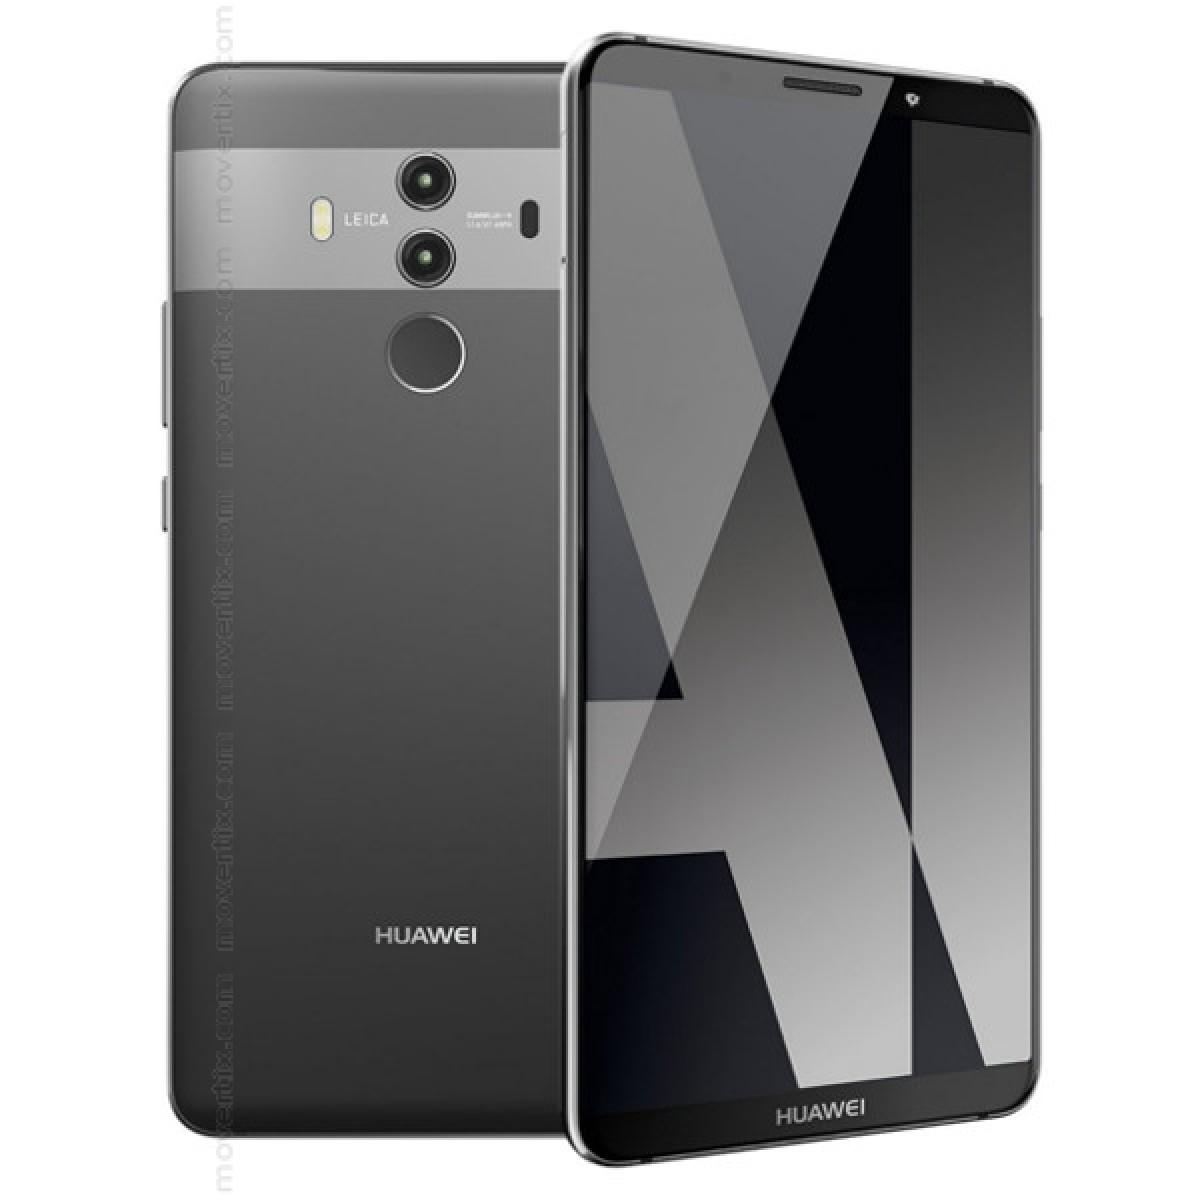 huawei mate 10 pro dual sim en gris de 128gb y 6gb ram 6901443200047 movertix tienda de. Black Bedroom Furniture Sets. Home Design Ideas